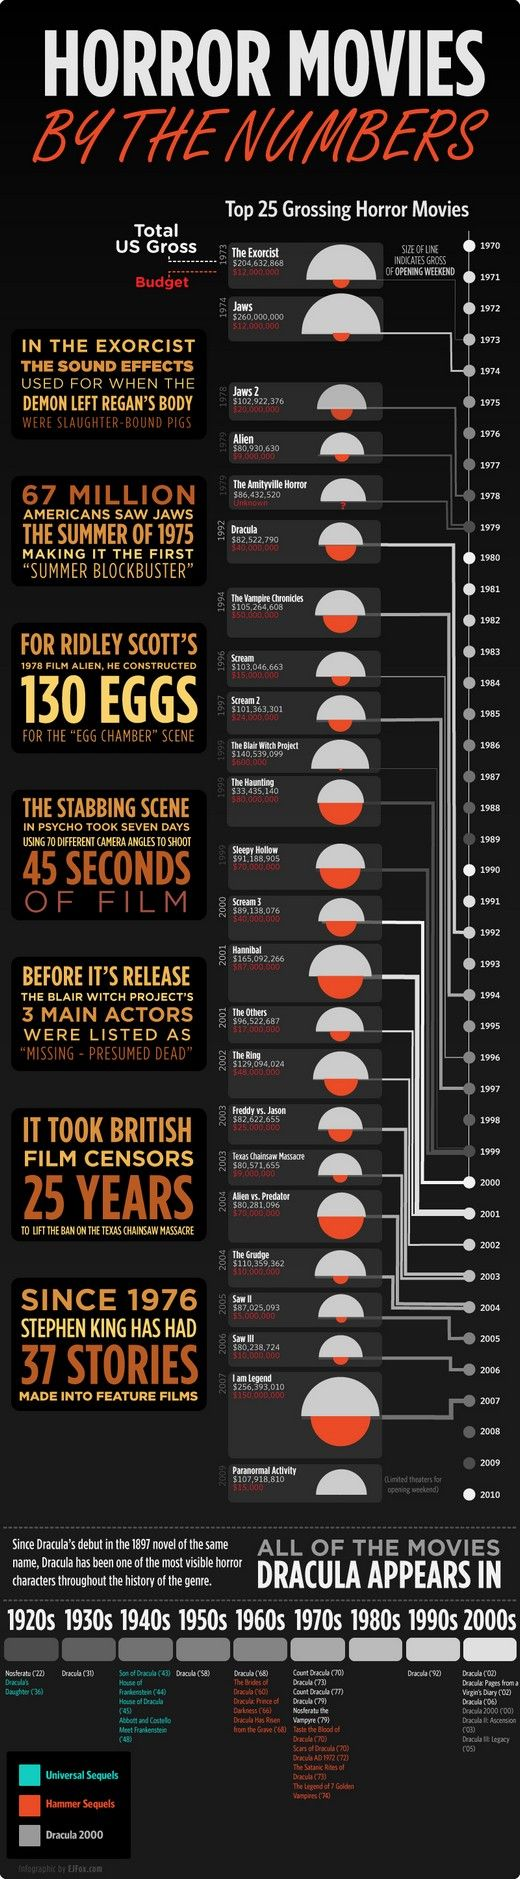 images about horror infographics power tools los natildeordmmeros en las pelatildeshyculas de terror horror movies by the numbers